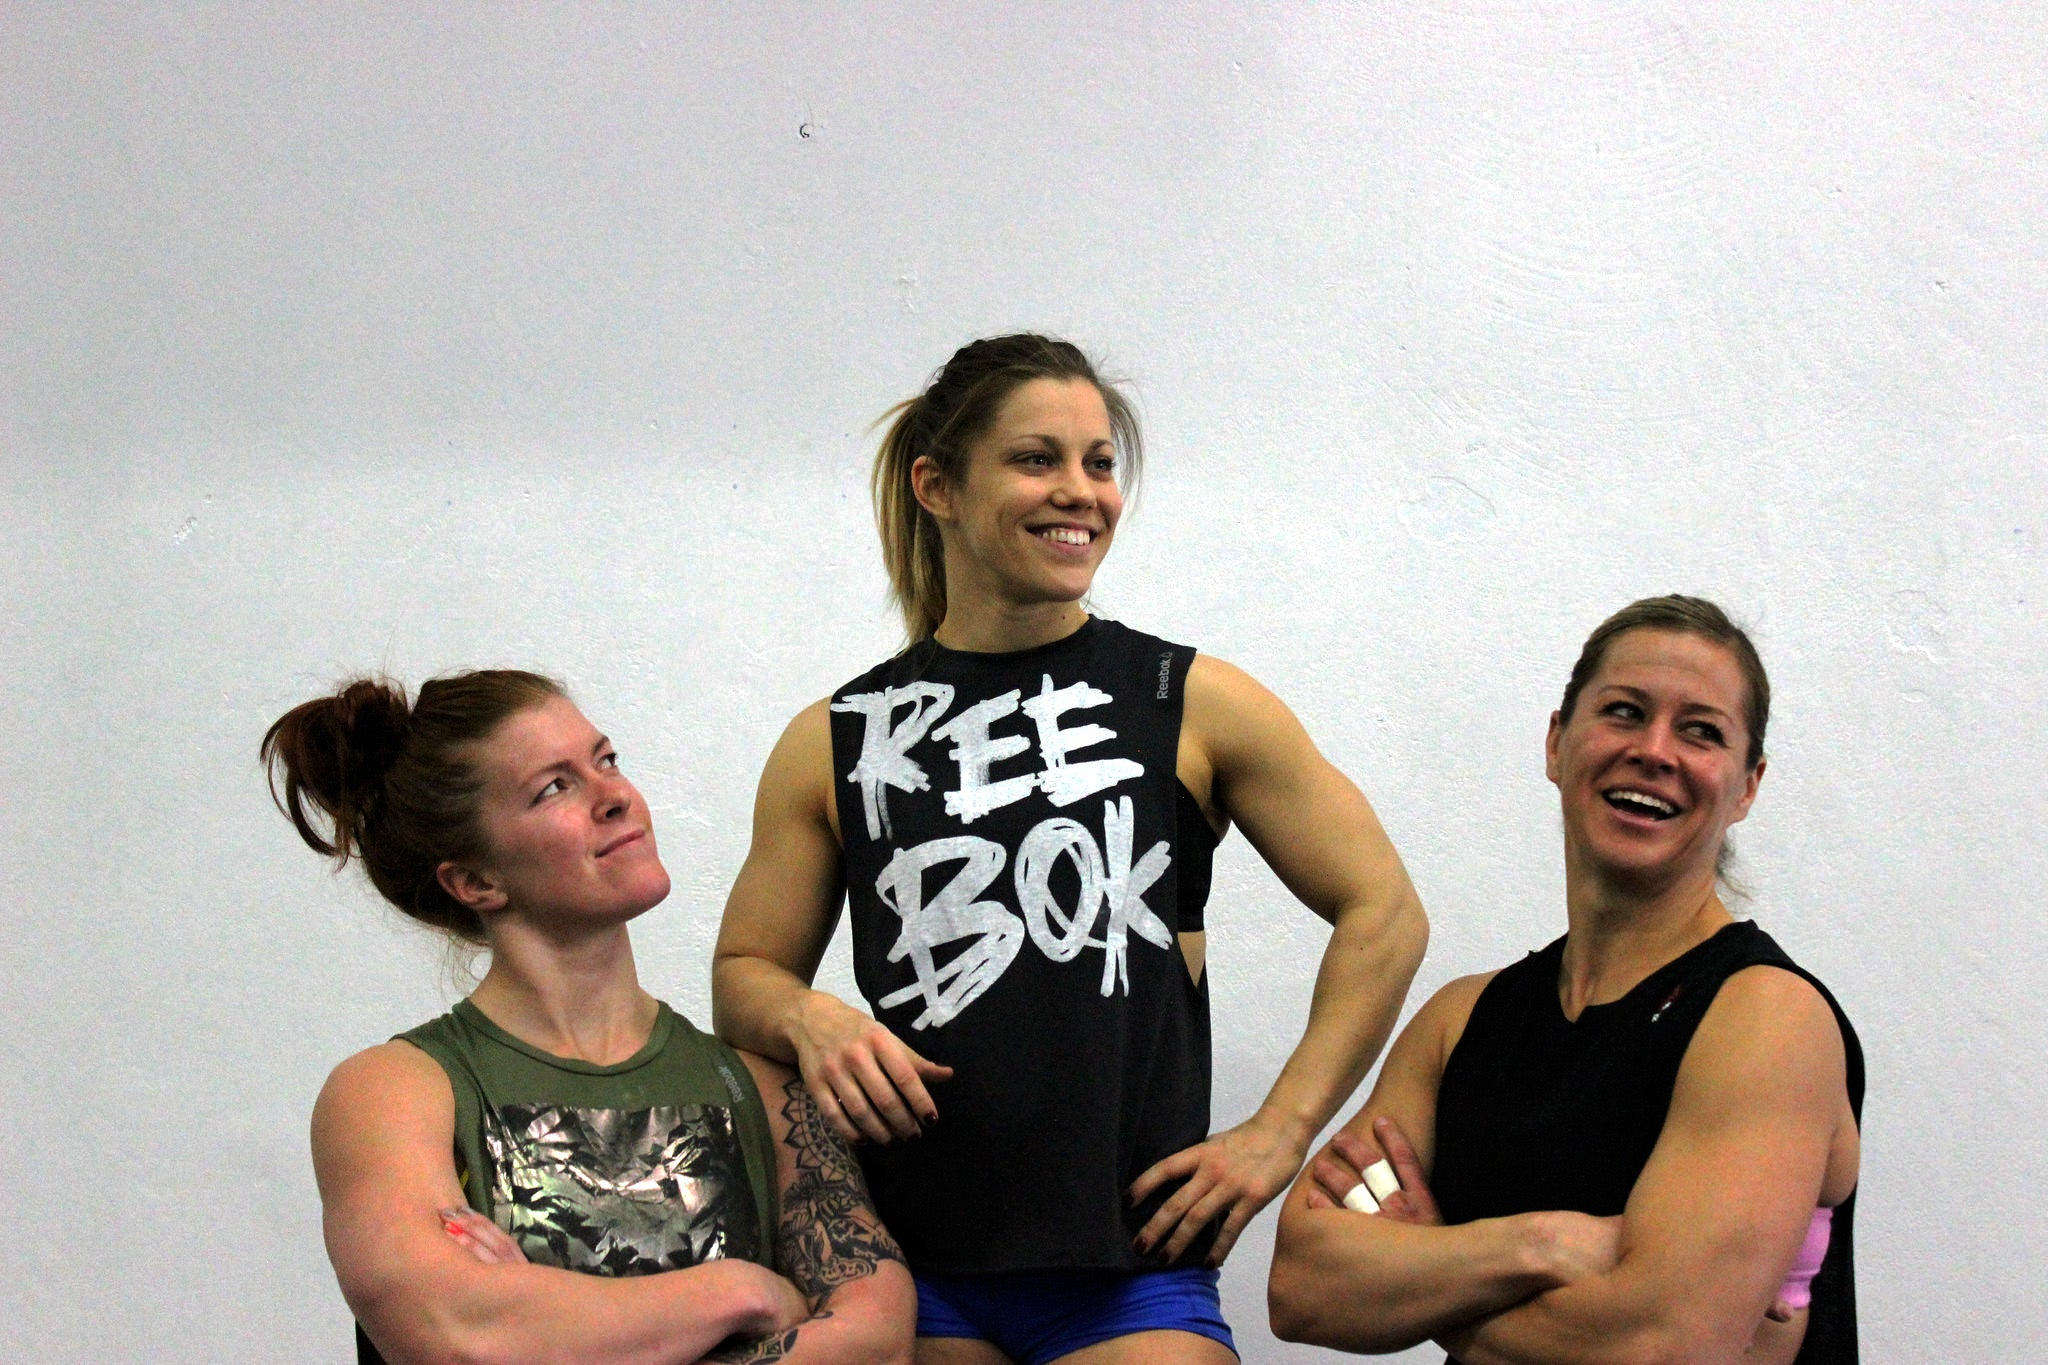 Michele Letendre, Becca Voigt and Emily Abbott training together. Via the Blonyx Blog